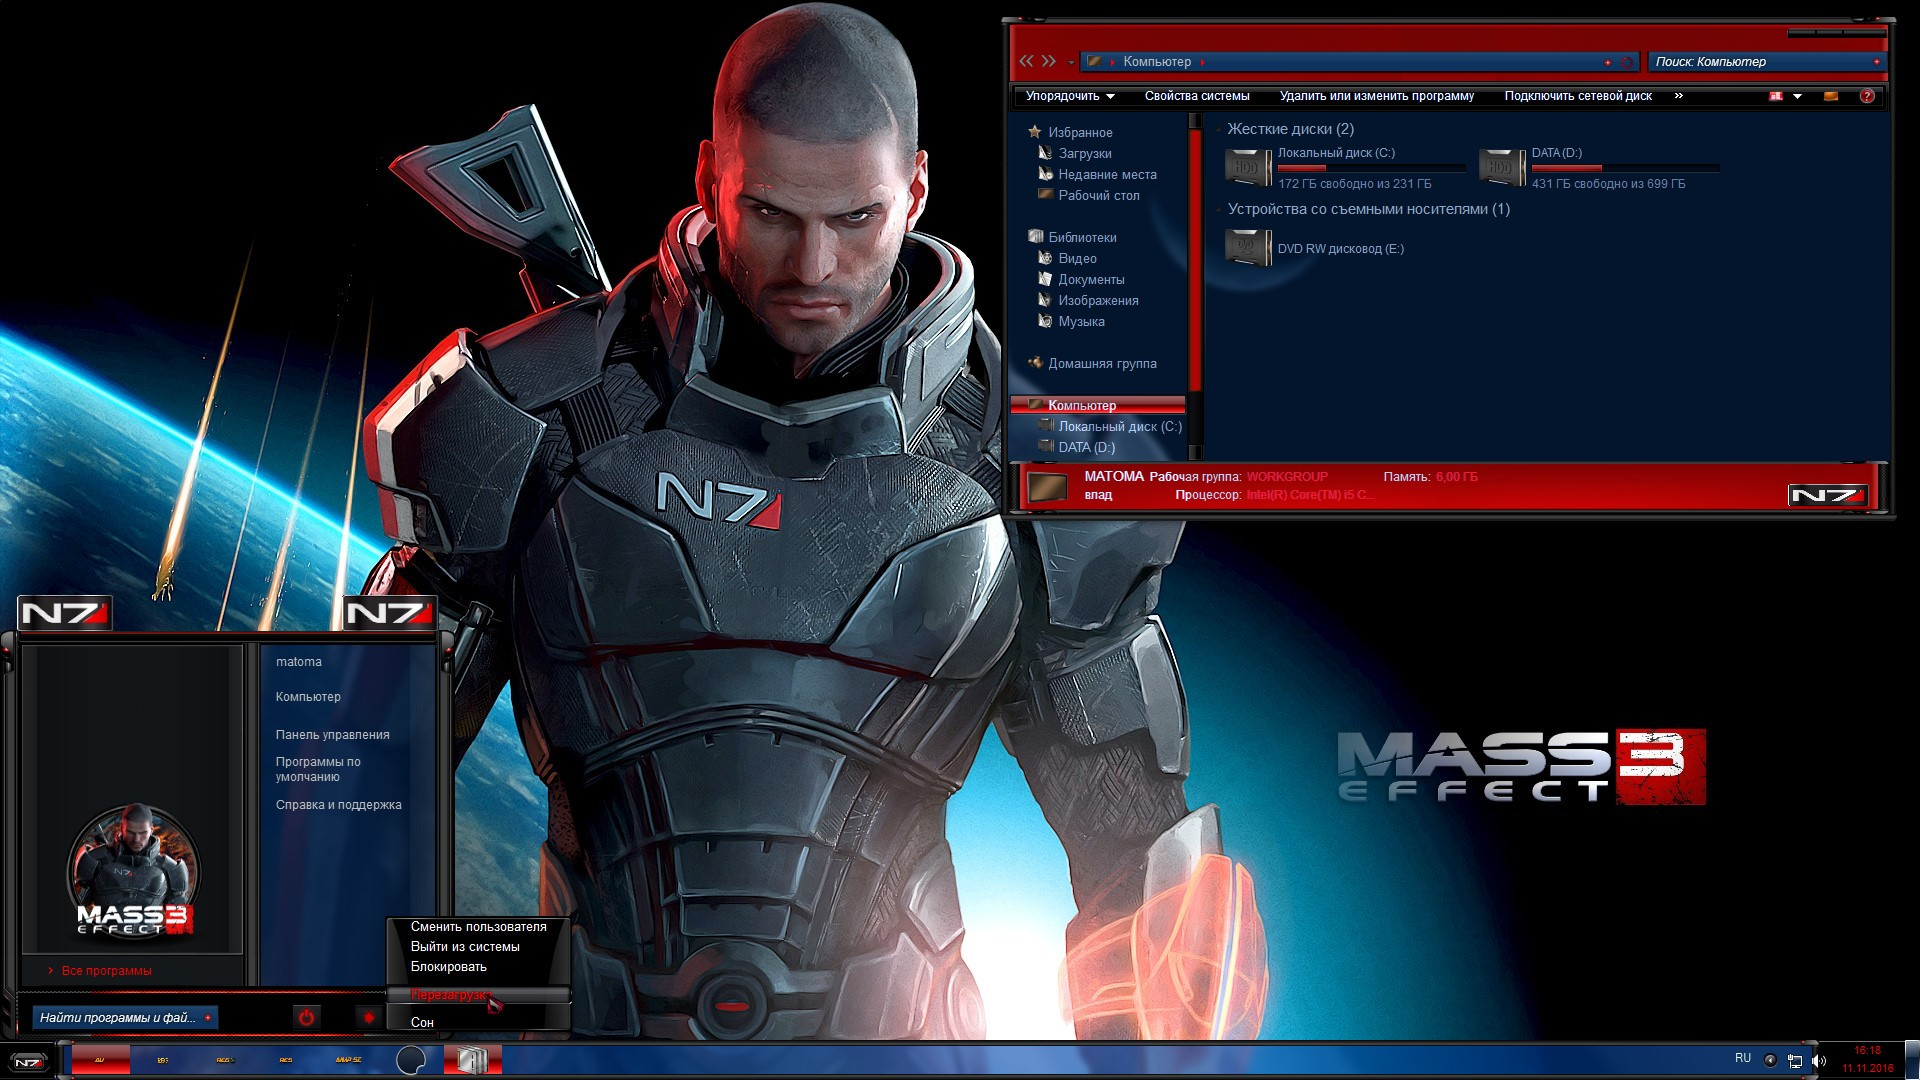 MASS EFFECT 3 Special Edition By gsw953 & Tiger & TheBull